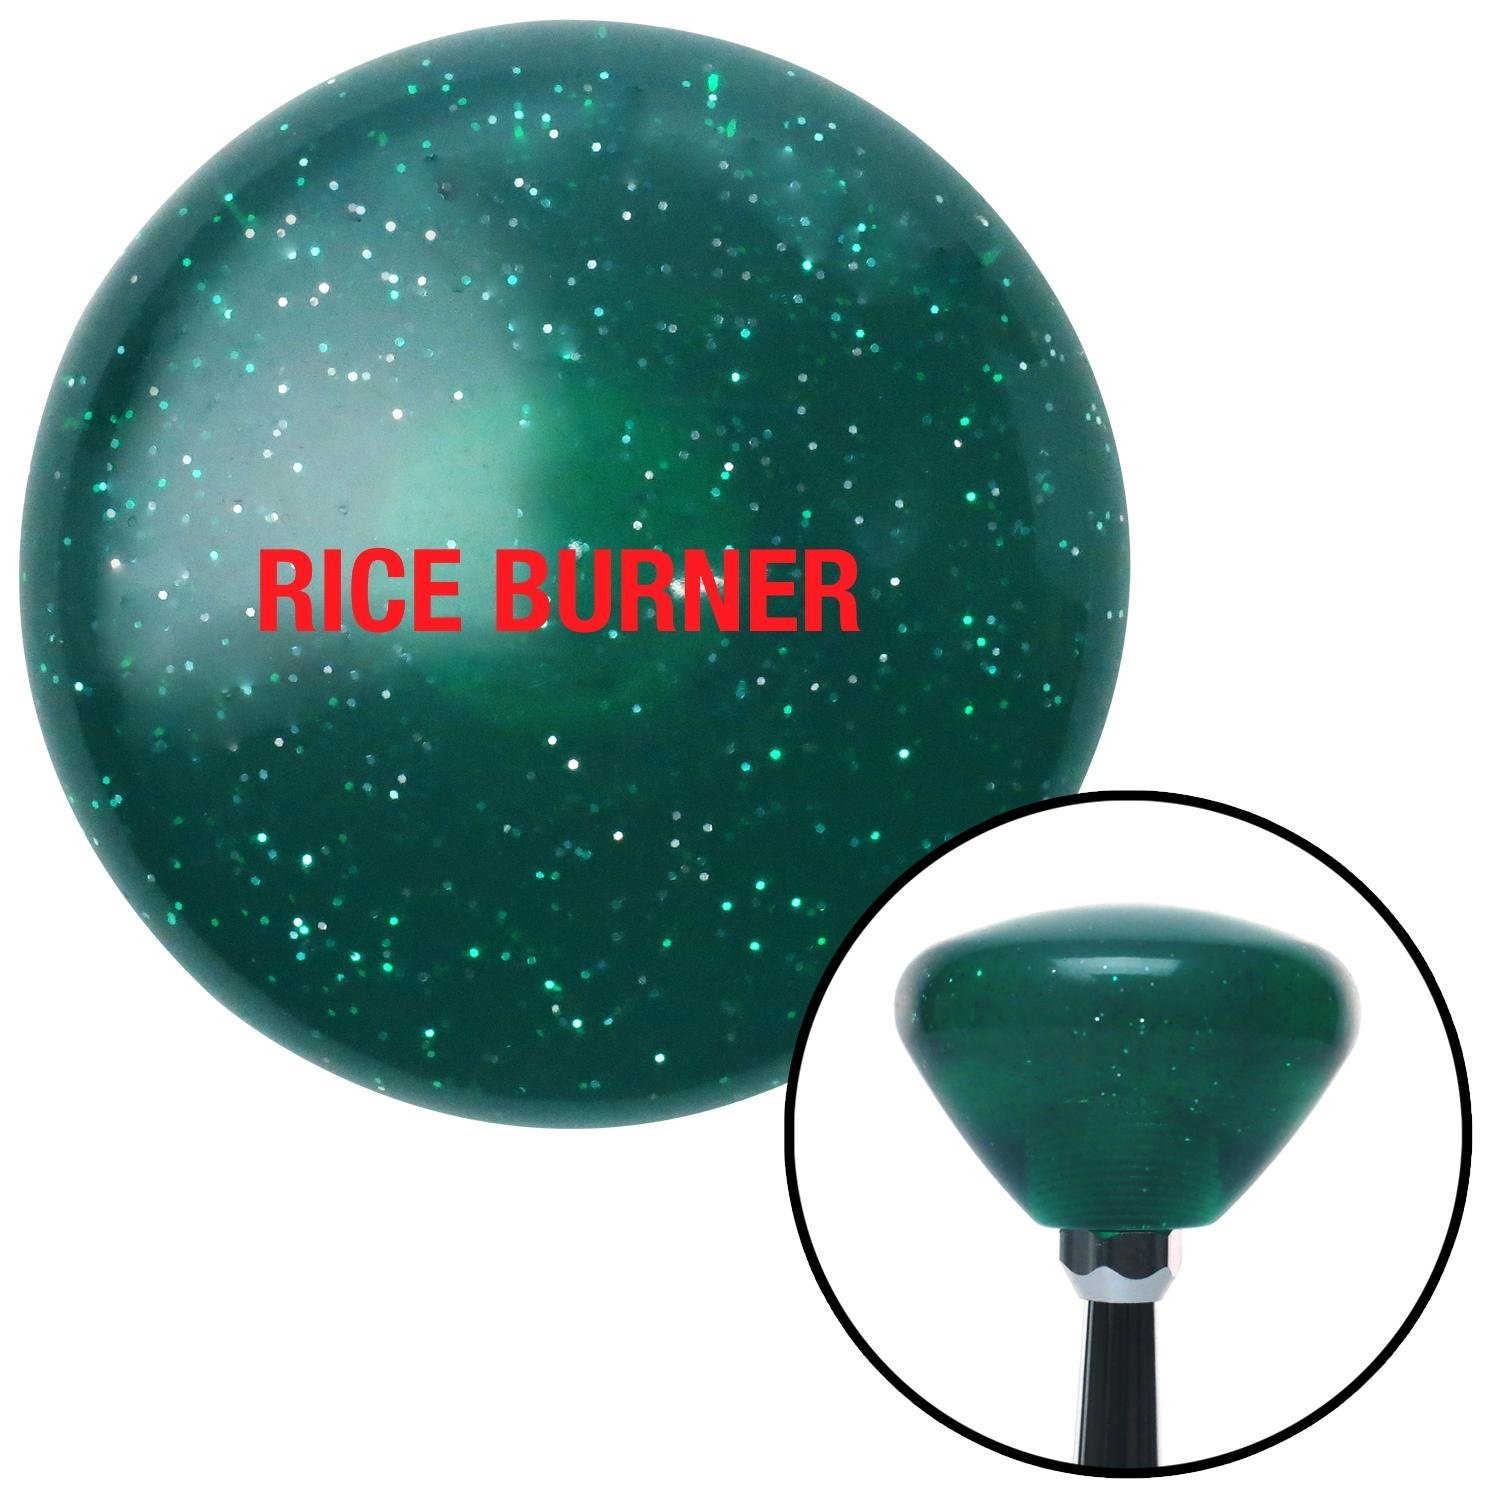 Red Rice Burner American Shifter 205820 Green Retro Metal Flake Shift Knob with M16 x 1.5 Insert